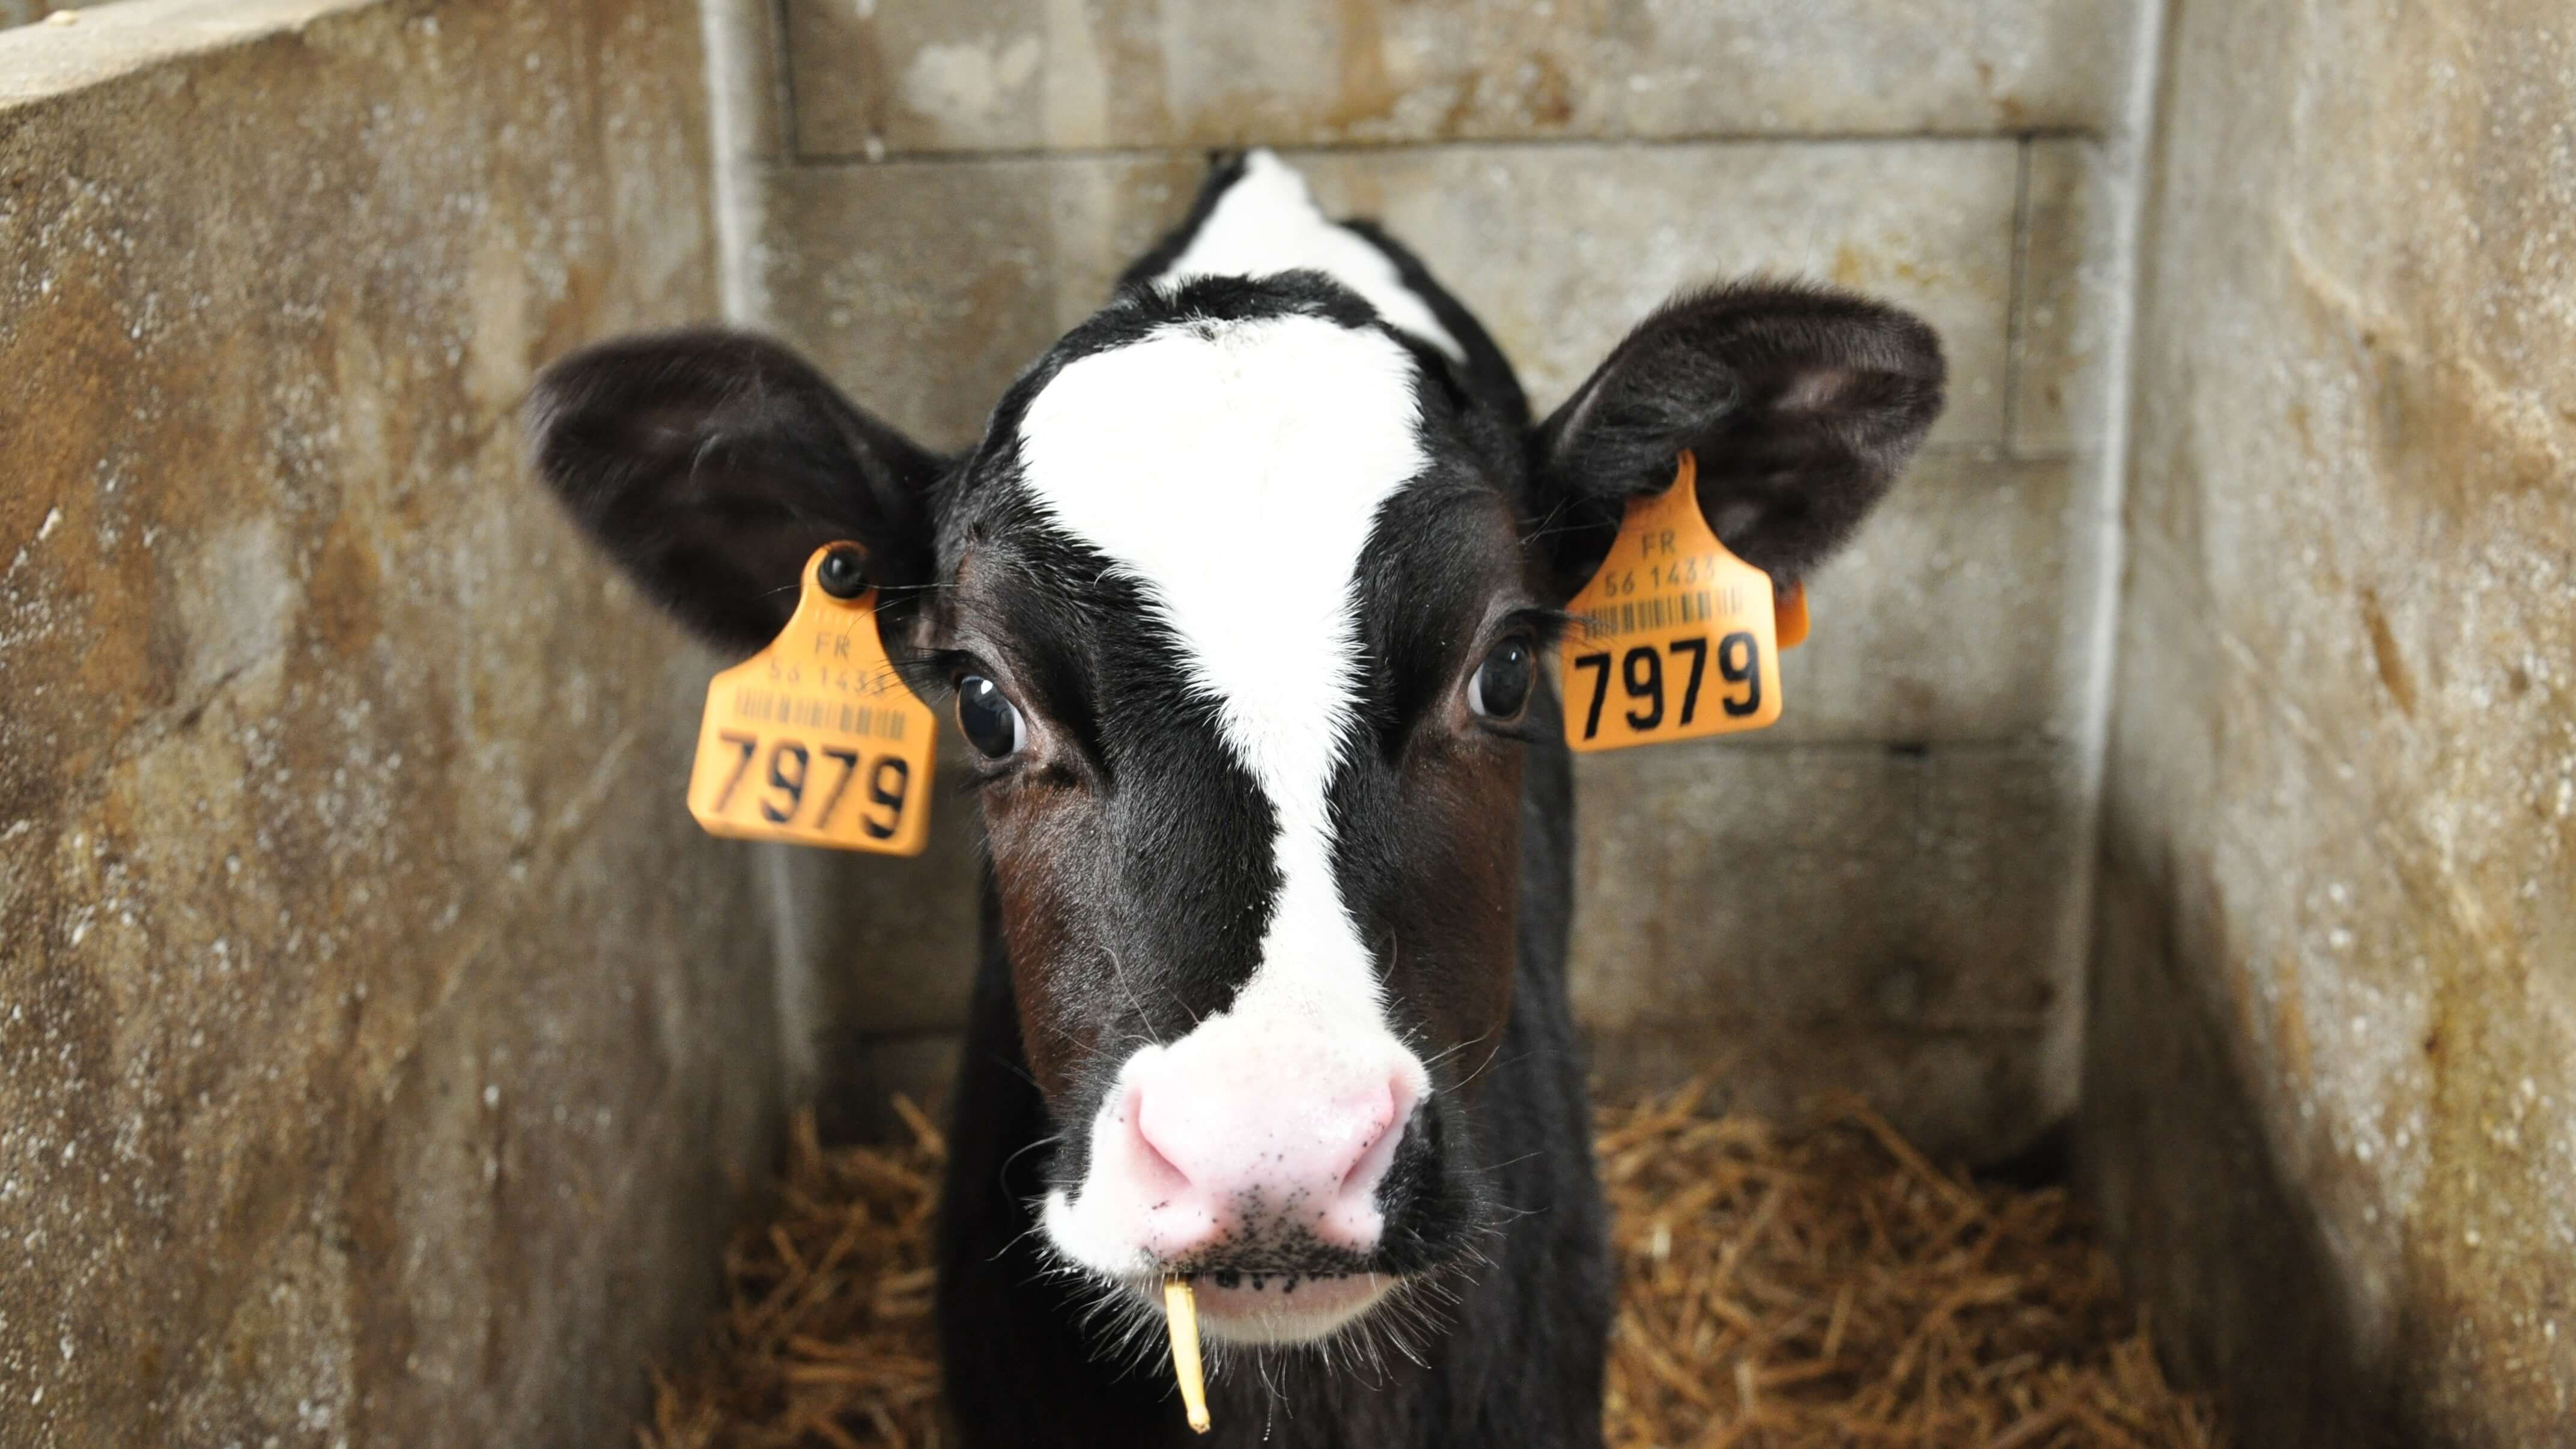 The BBC Reveals 'The Dark Side of Dairy' in New Series 'Disclosure'